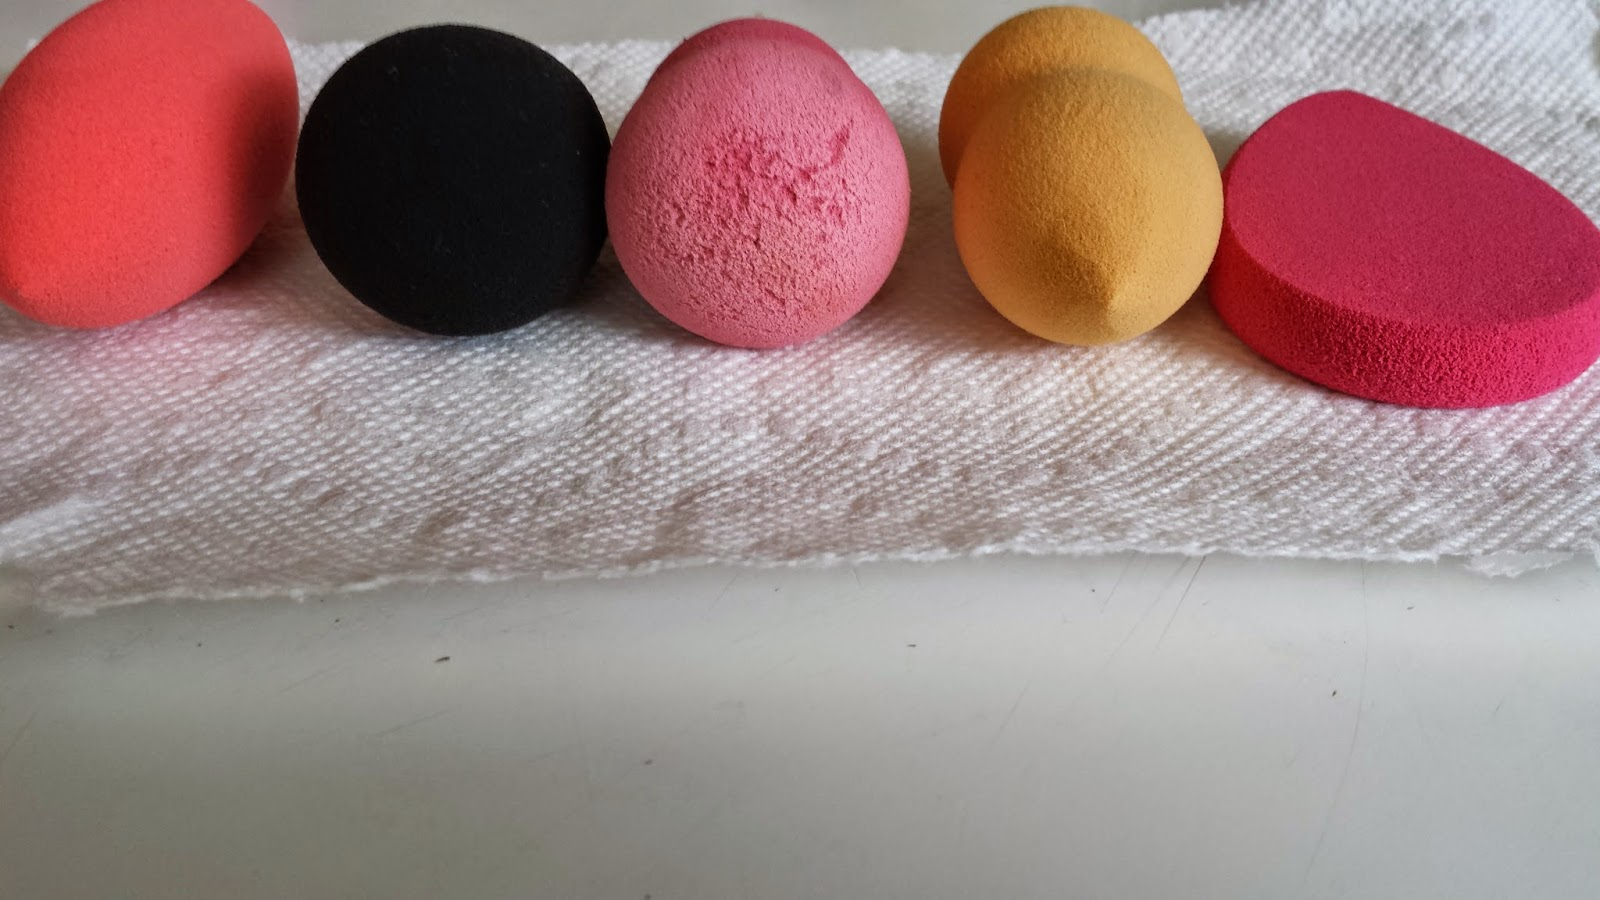 Beauty sponge comparison - www.modenmakeup.com